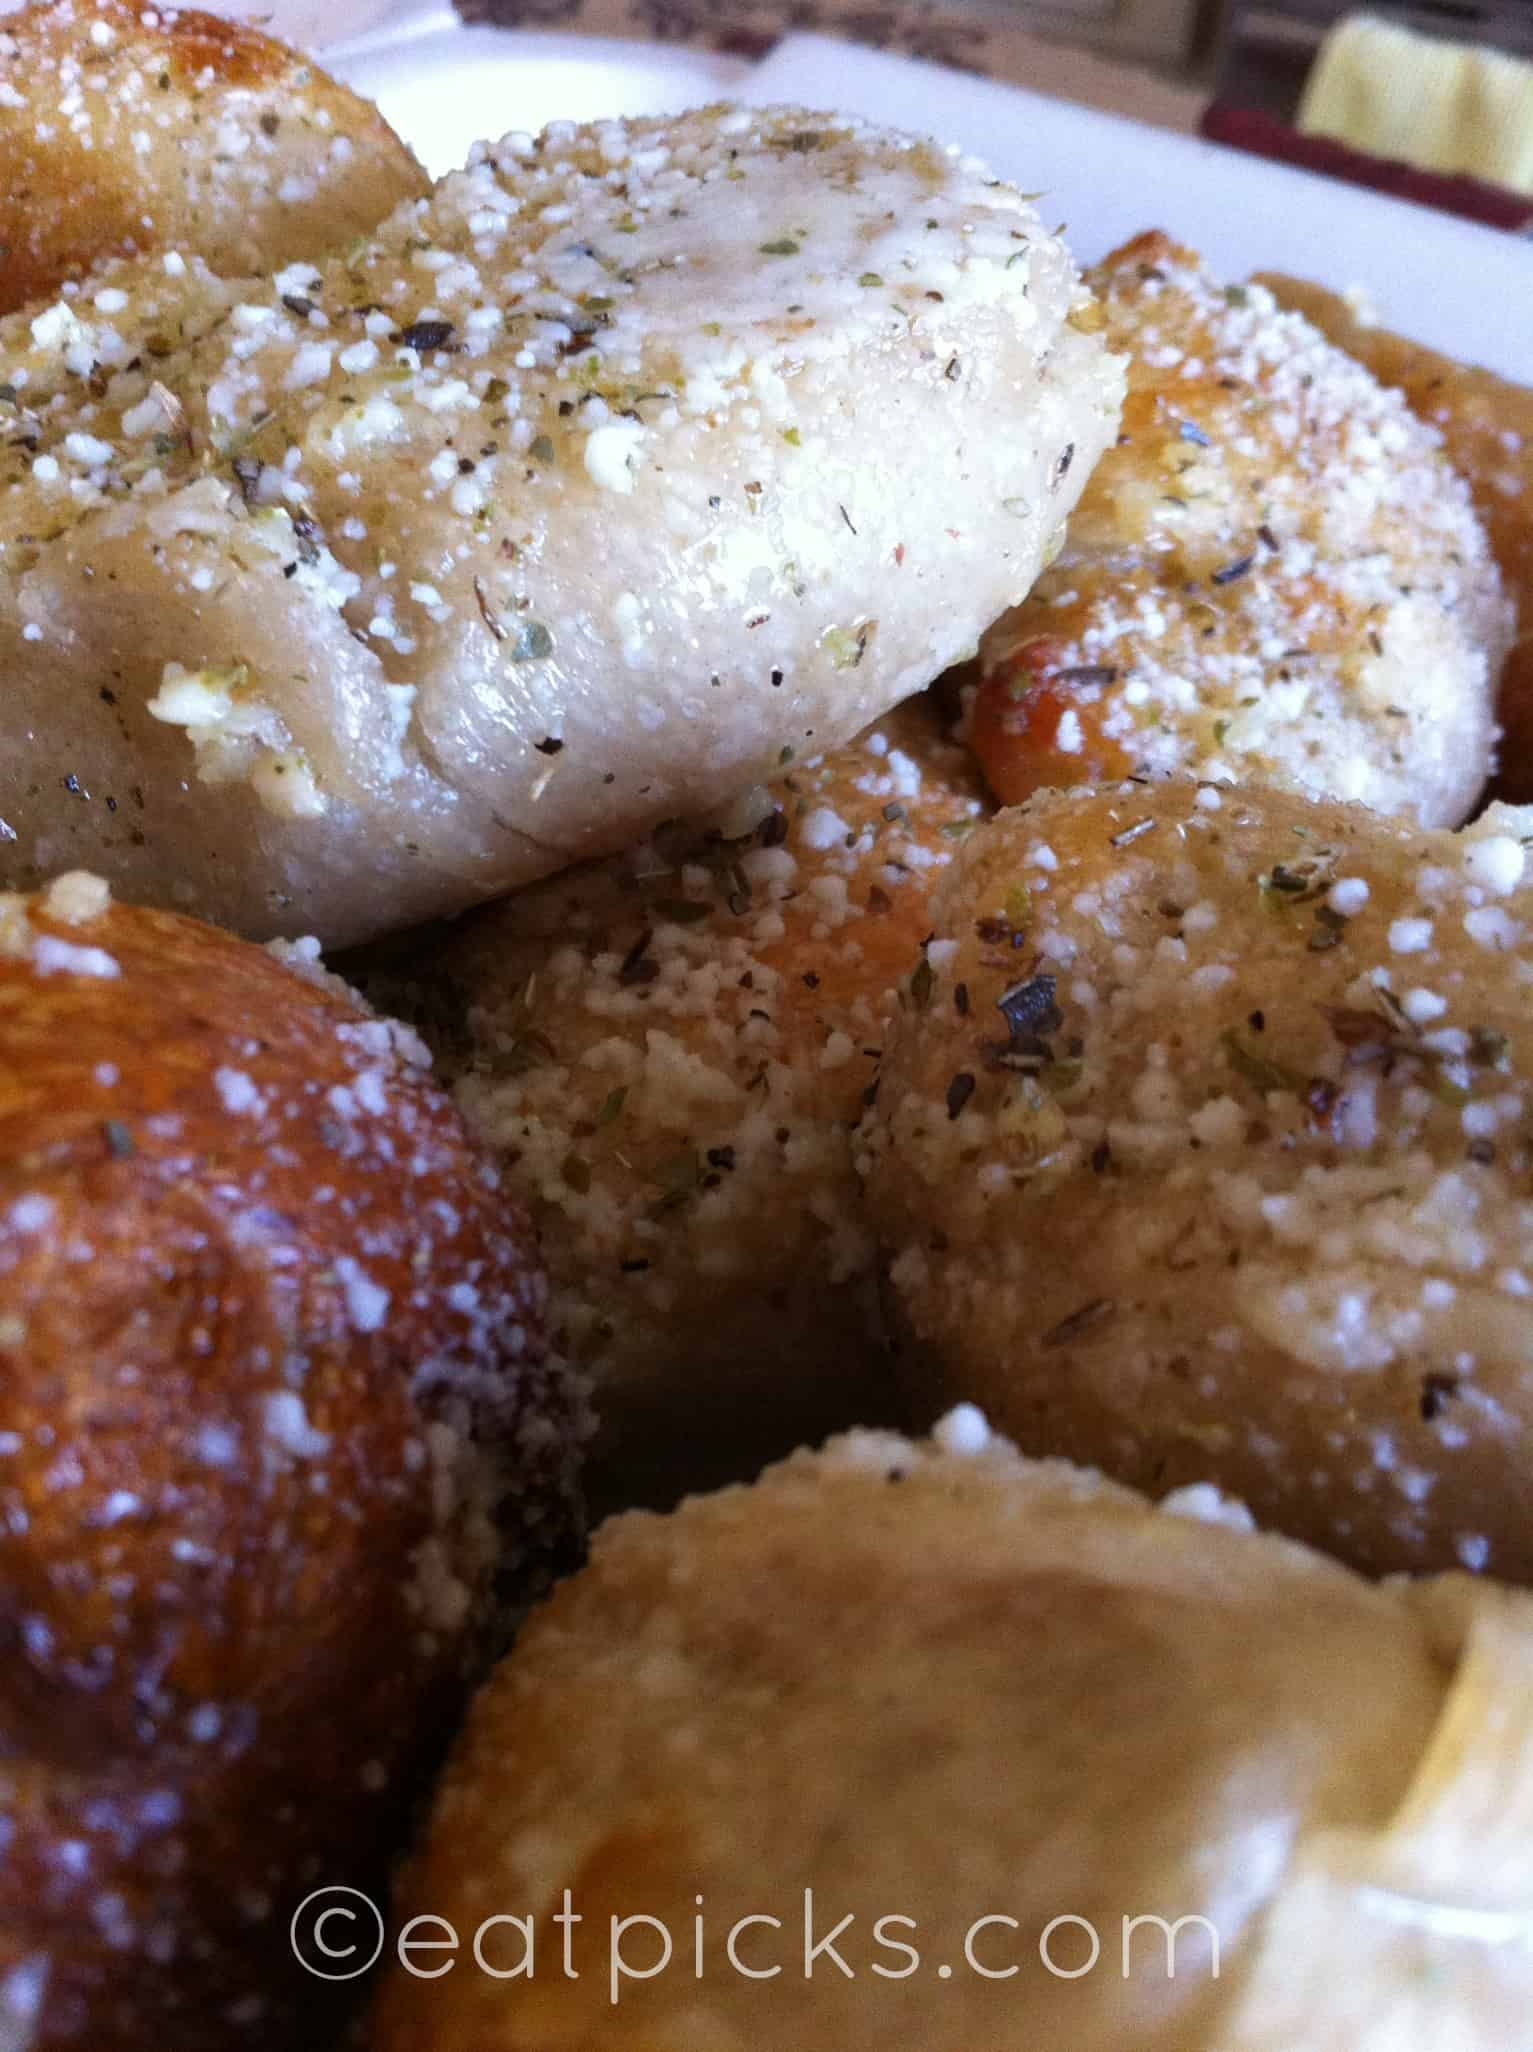 VaBeach2-primo-garlic-knots-eatpicks.com-2012 073